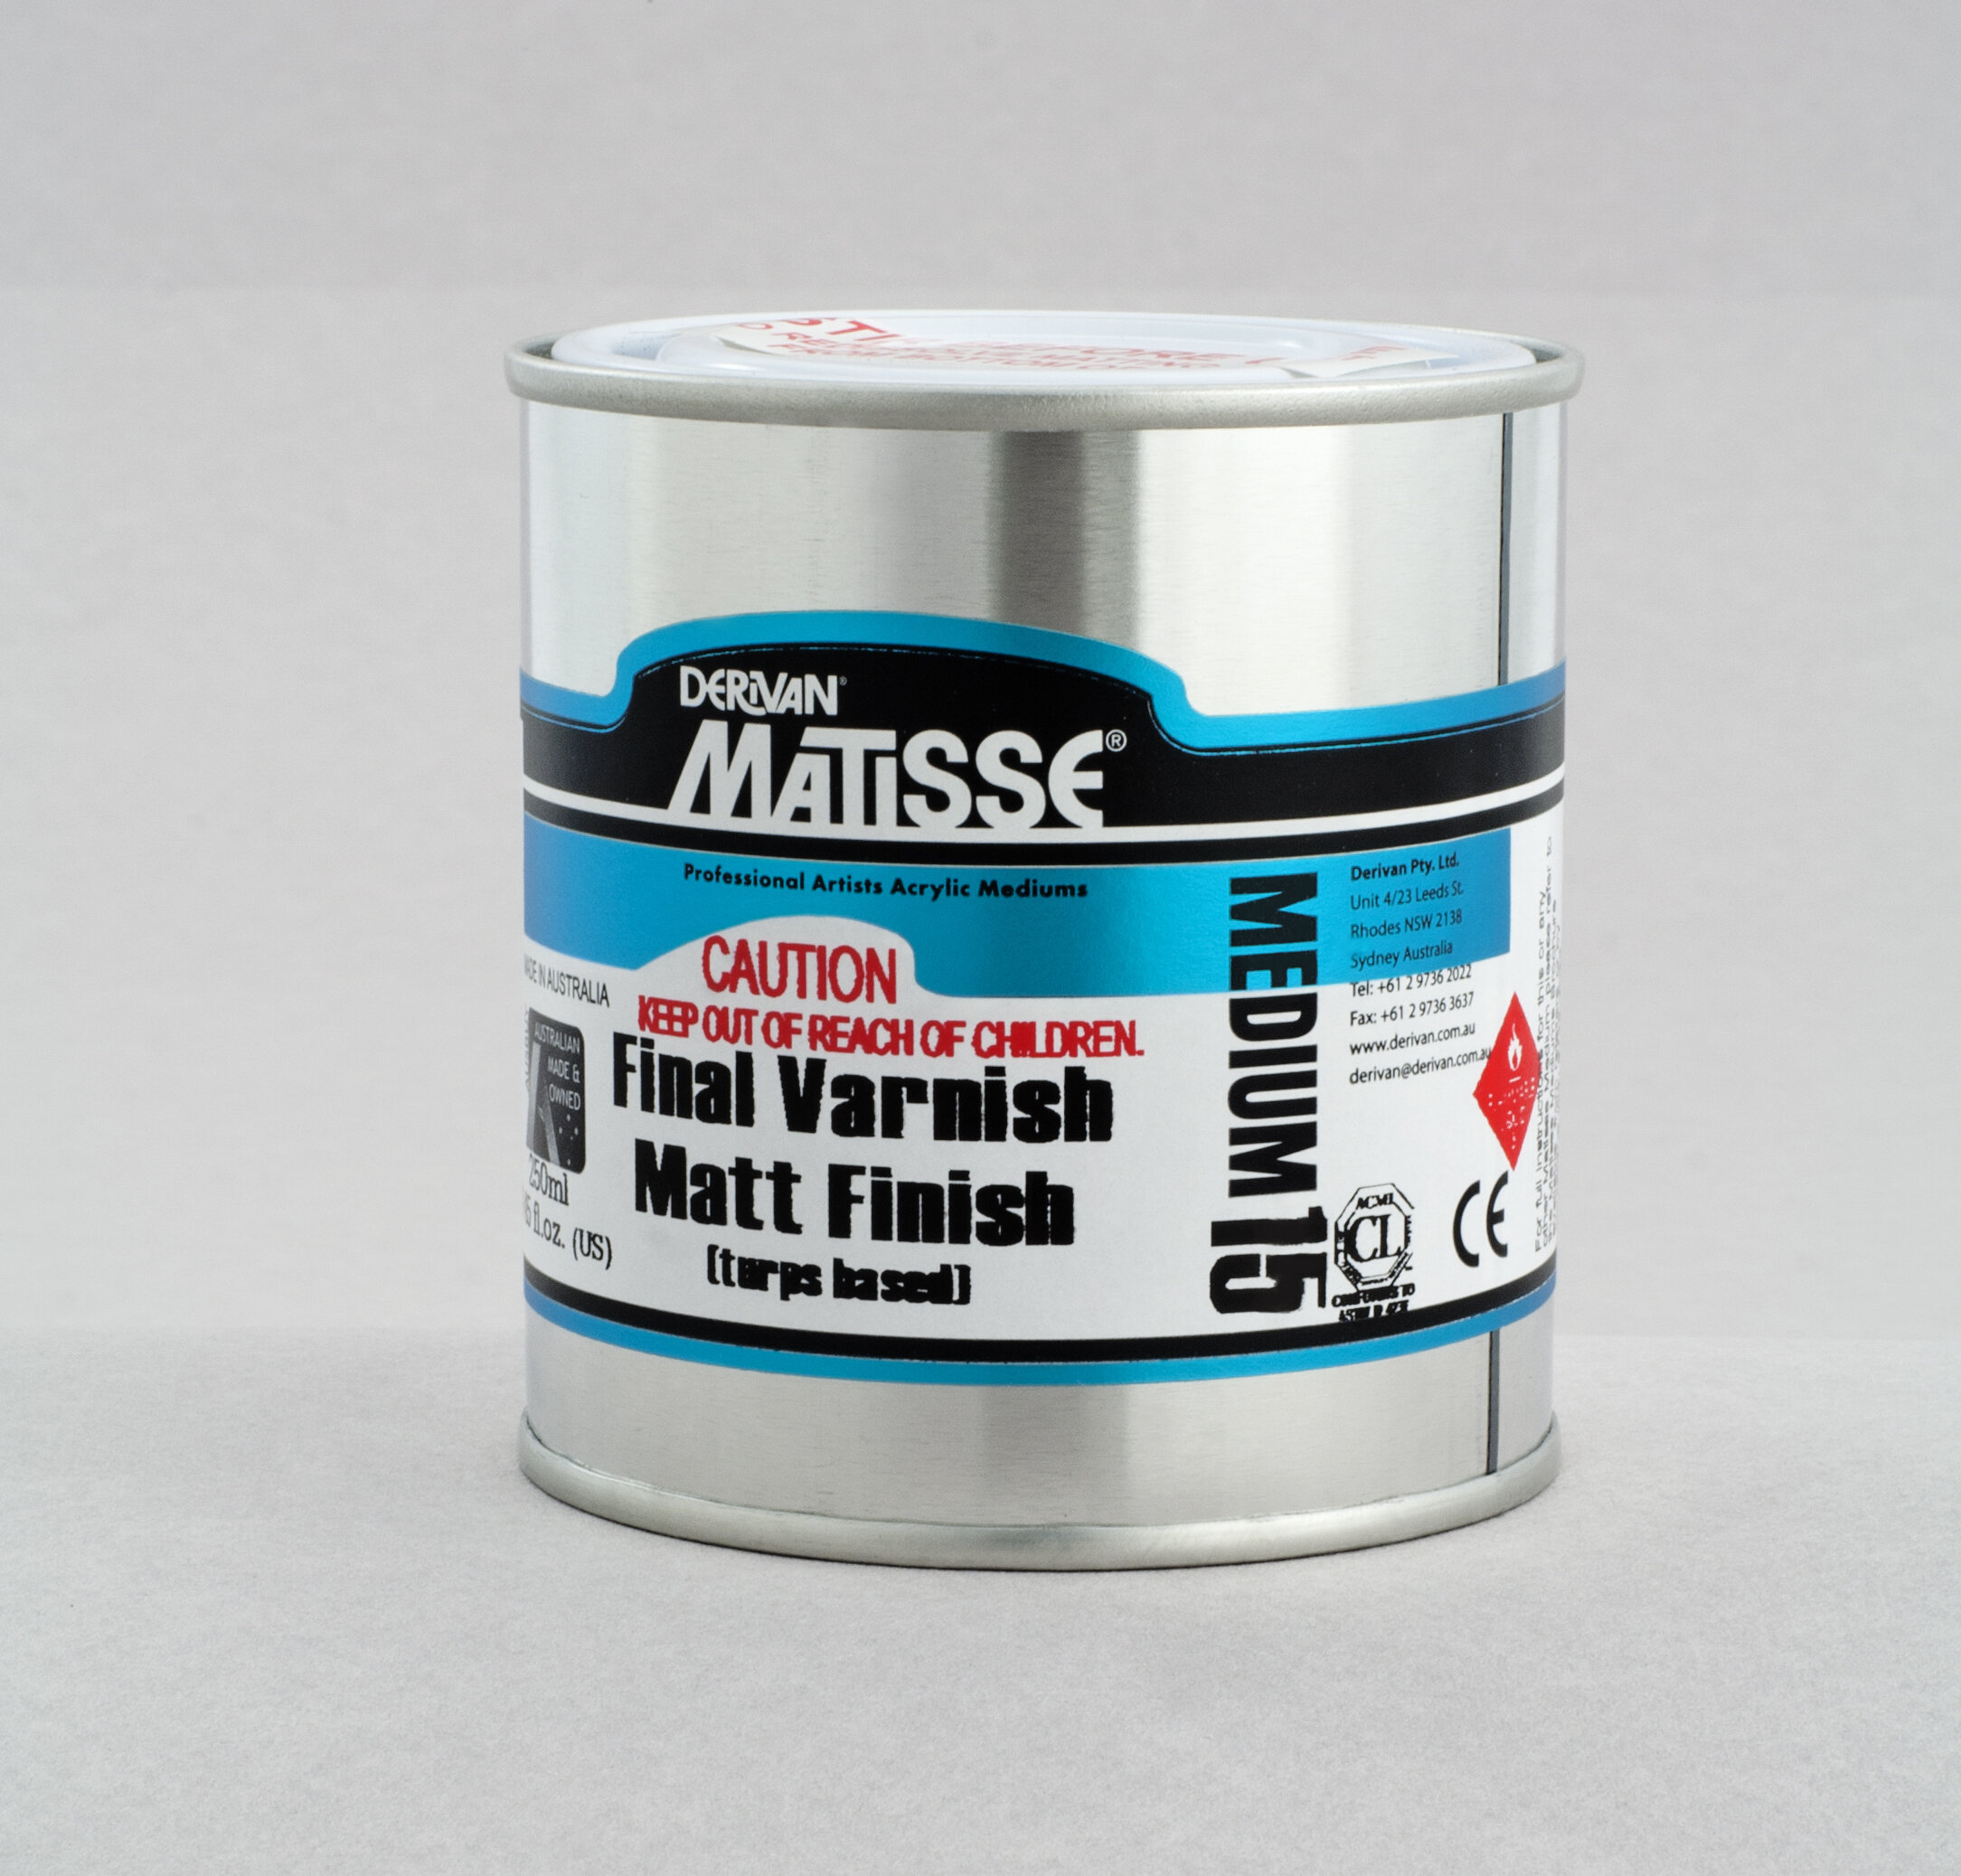 MM15 Matt Varnish(turps-based) - ———————Conservation quality solvent-based non-yellowing acrylic matt finish varnish. Redissolves in turps to strip and clean or to rework.